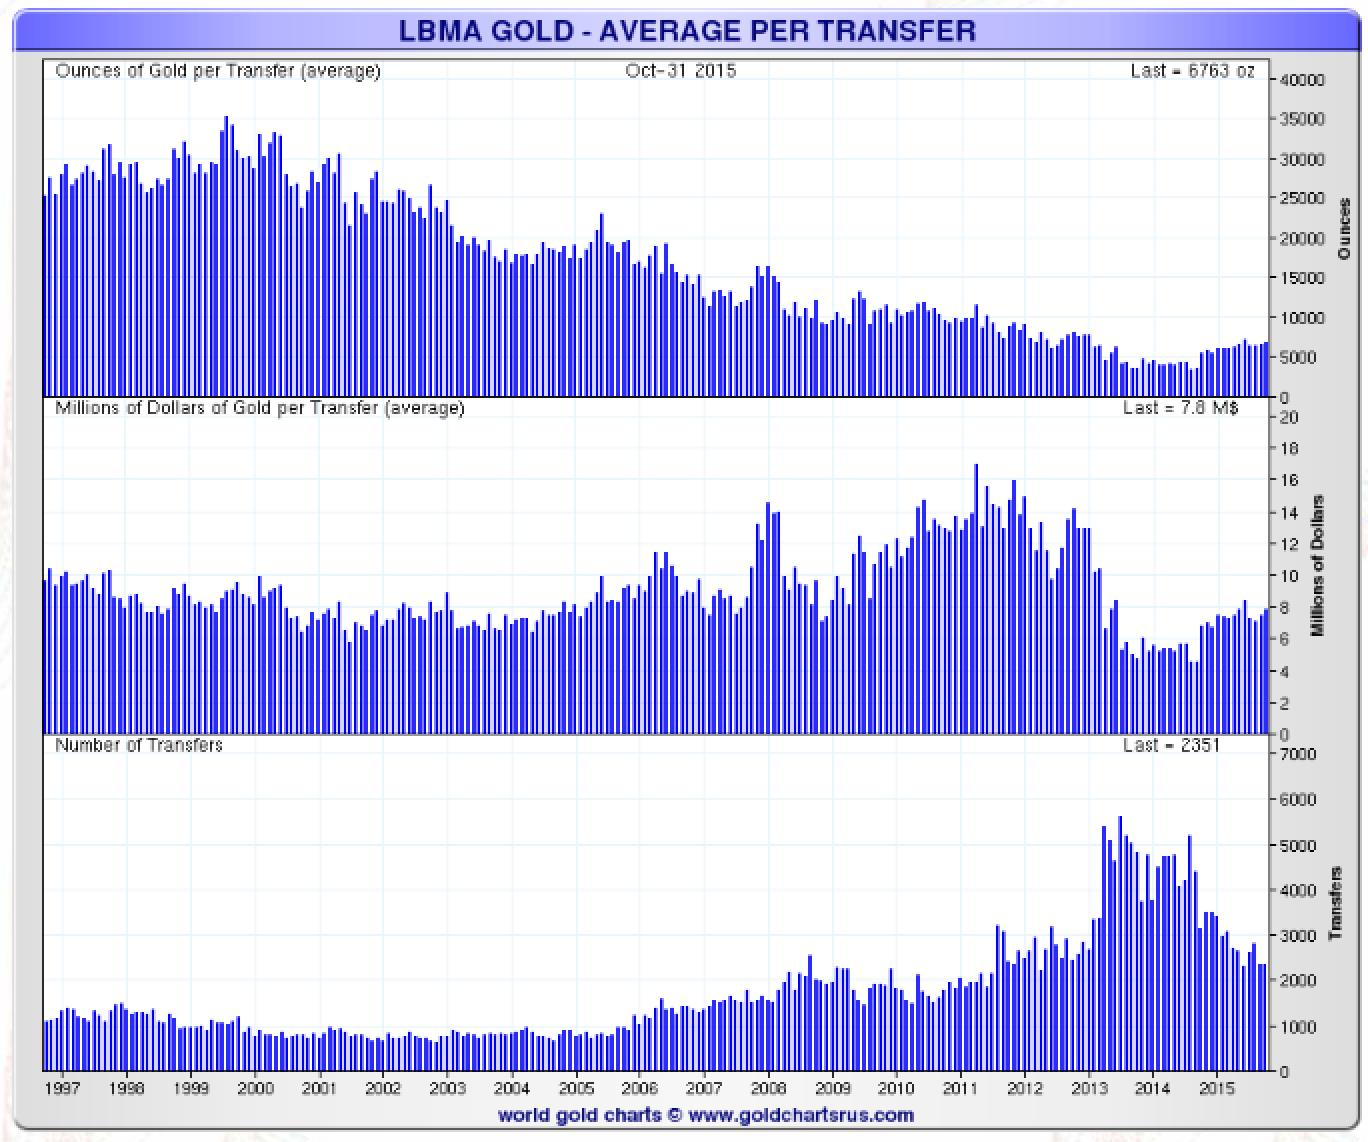 LBMA Gold -  Average per transfer